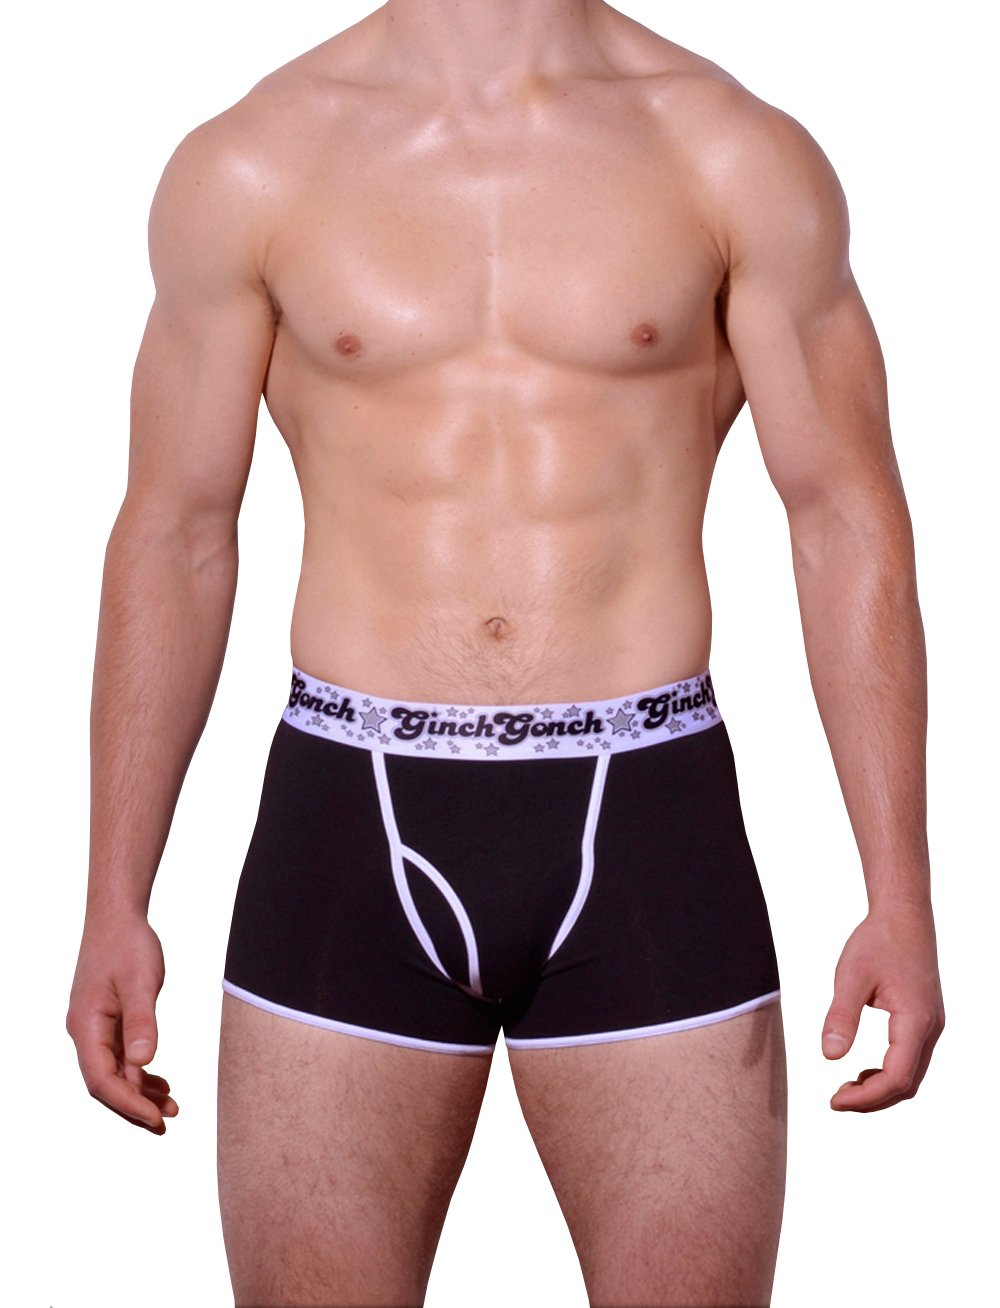 Ginch Gonch Black Magic Trunk Boxer Brief Black men's underwear with black panels and white trim binding printed waistband front